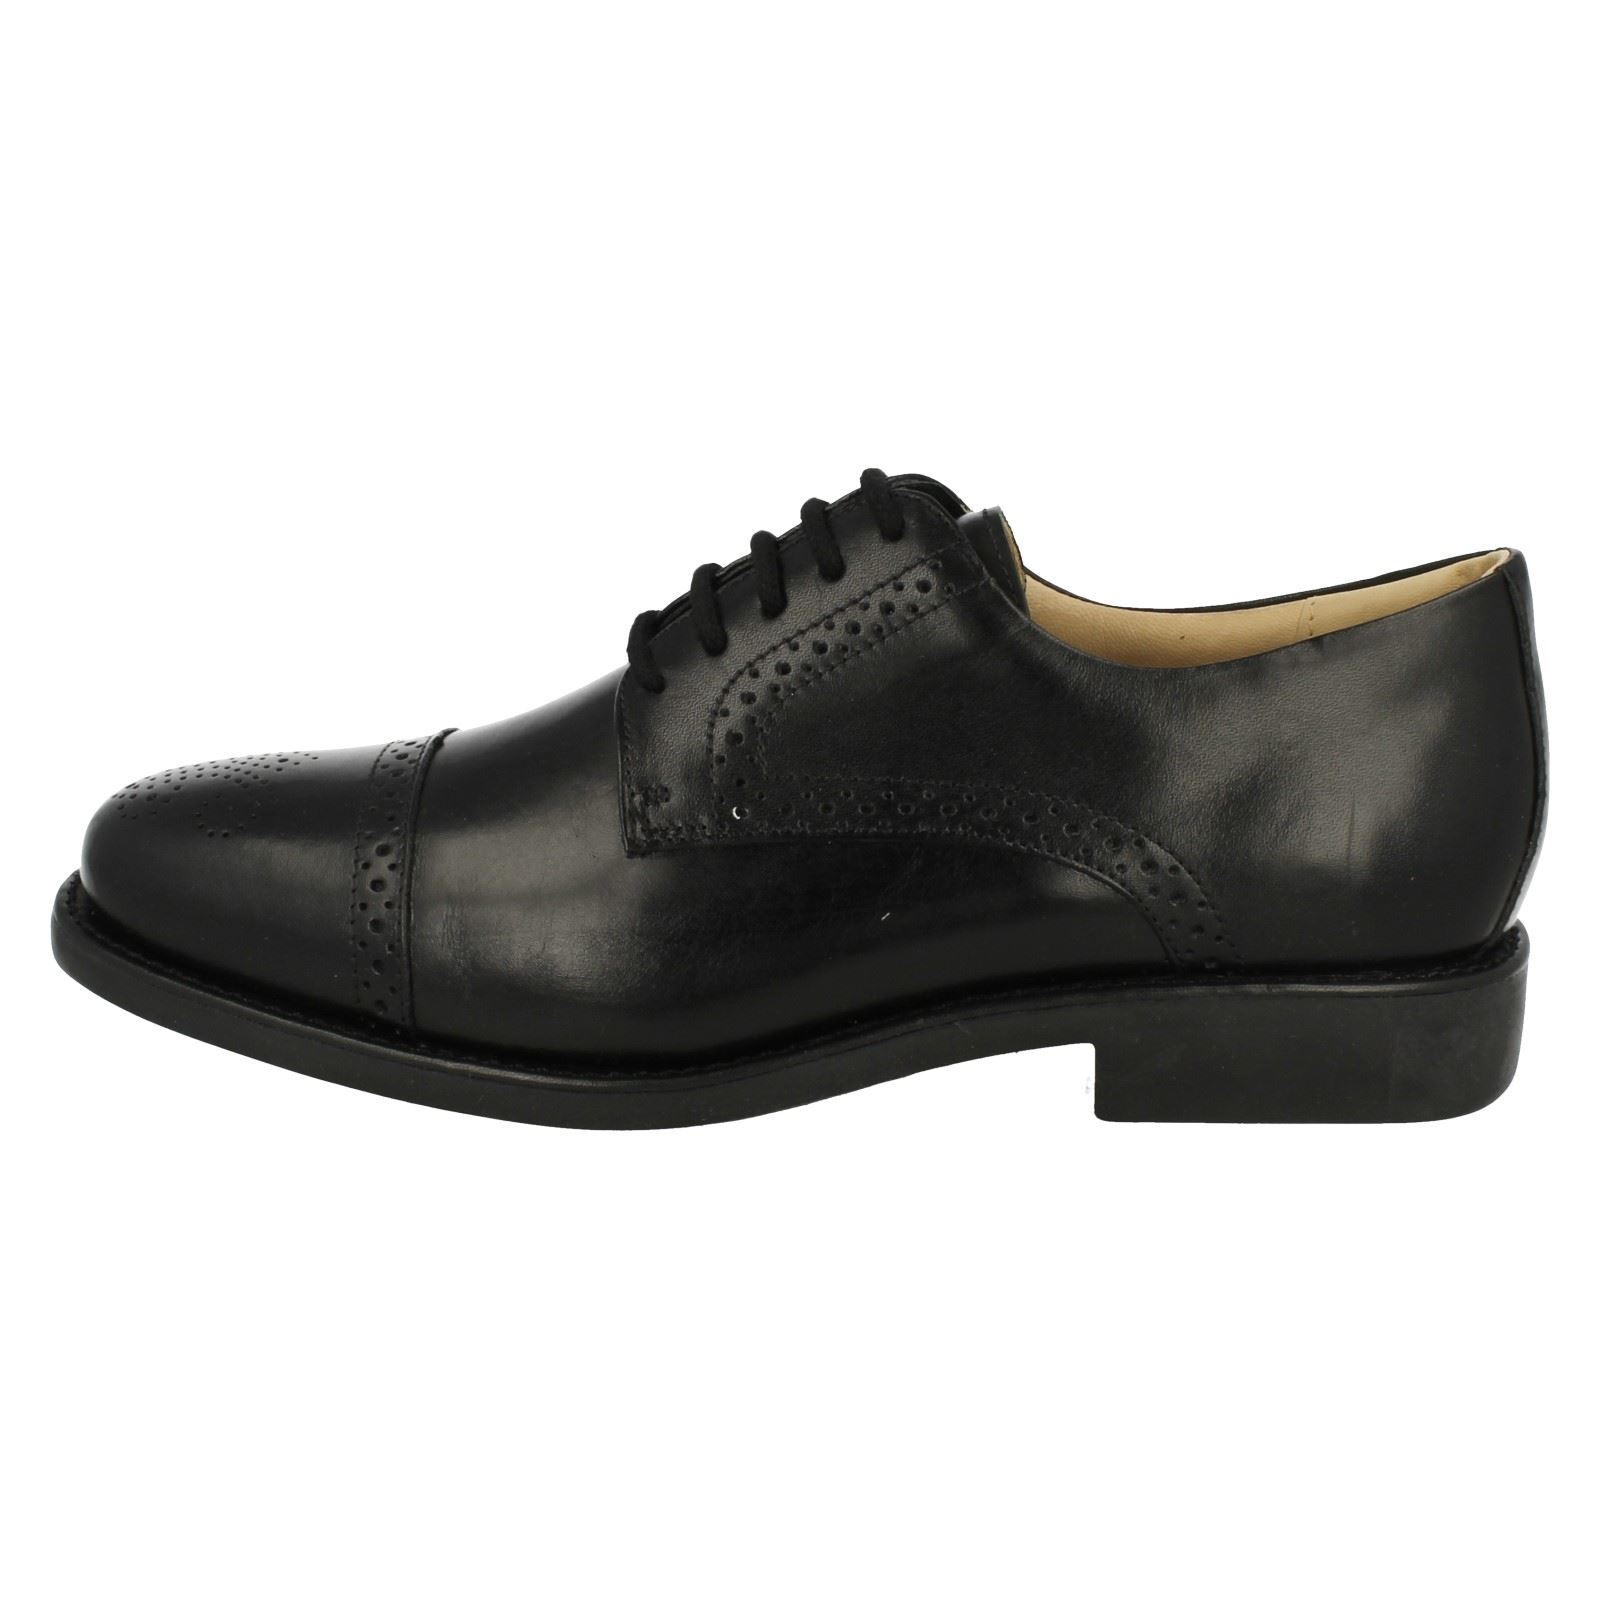 Mens Anatomic Formal Formal Formal Brogue Detailed Shoes Araras d69b12